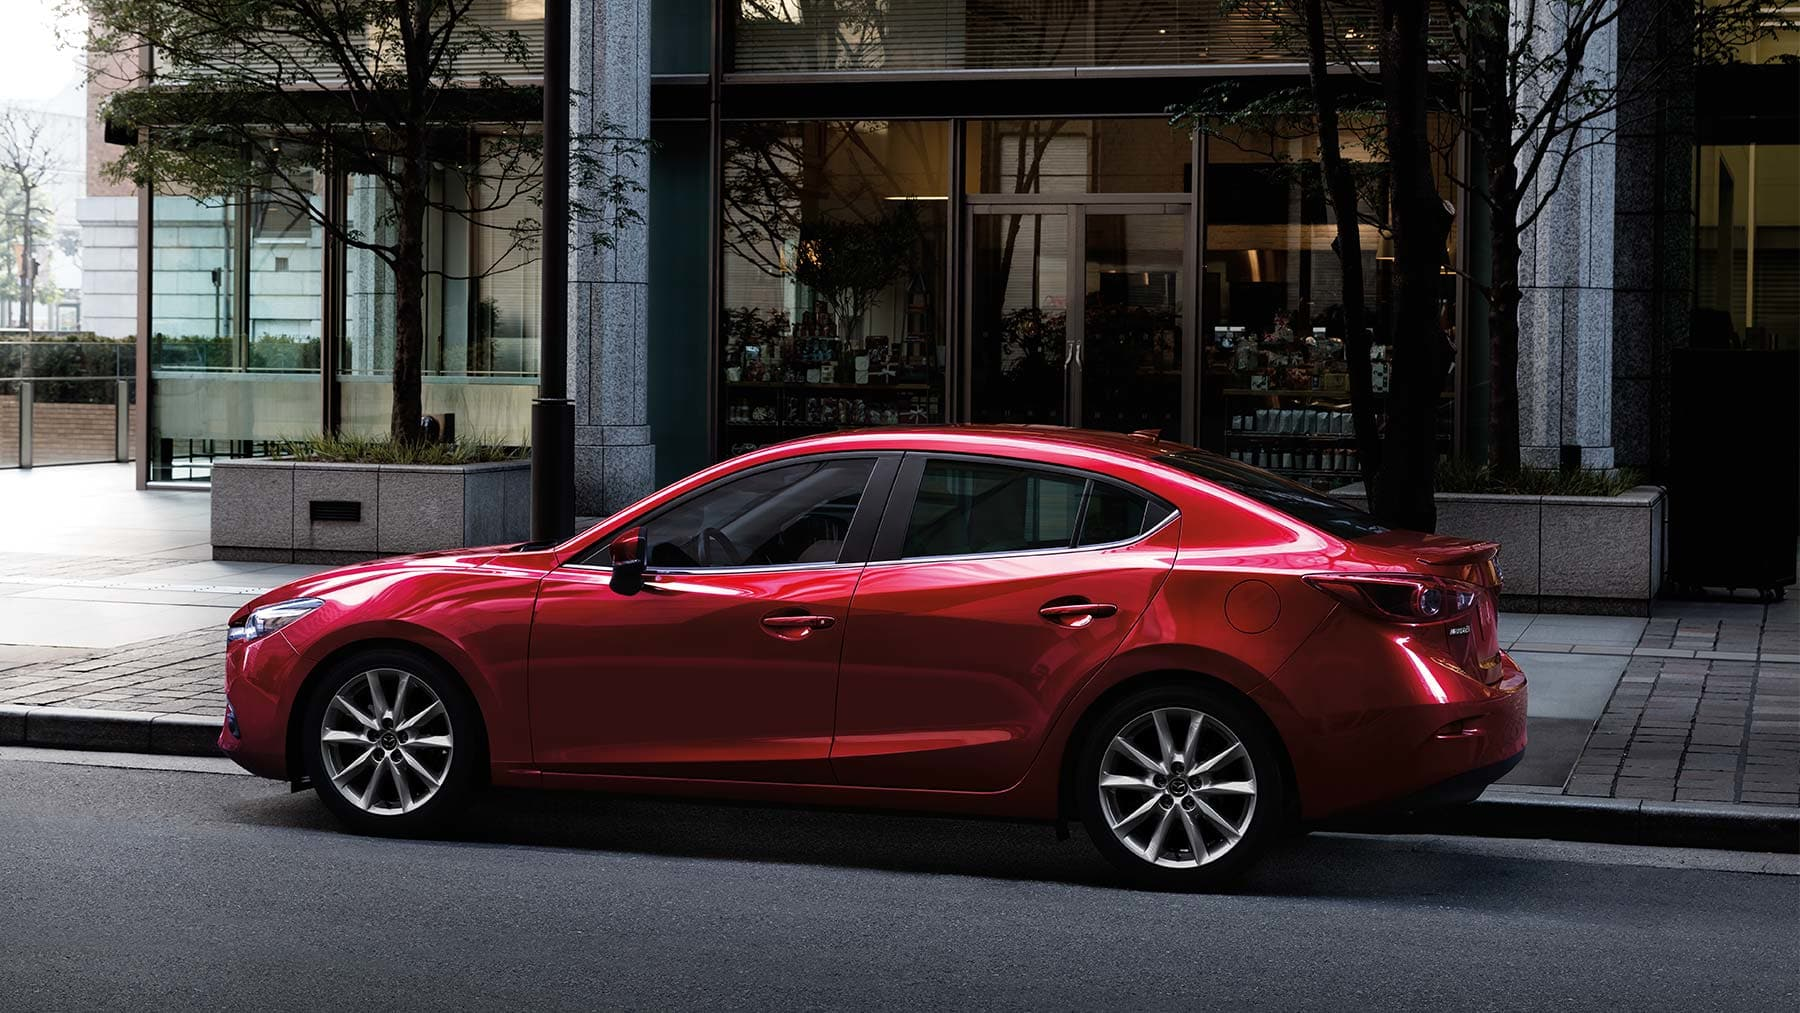 2017 Mazda3: Turning Heads With Its Stylish Exterior & Powerful Drive